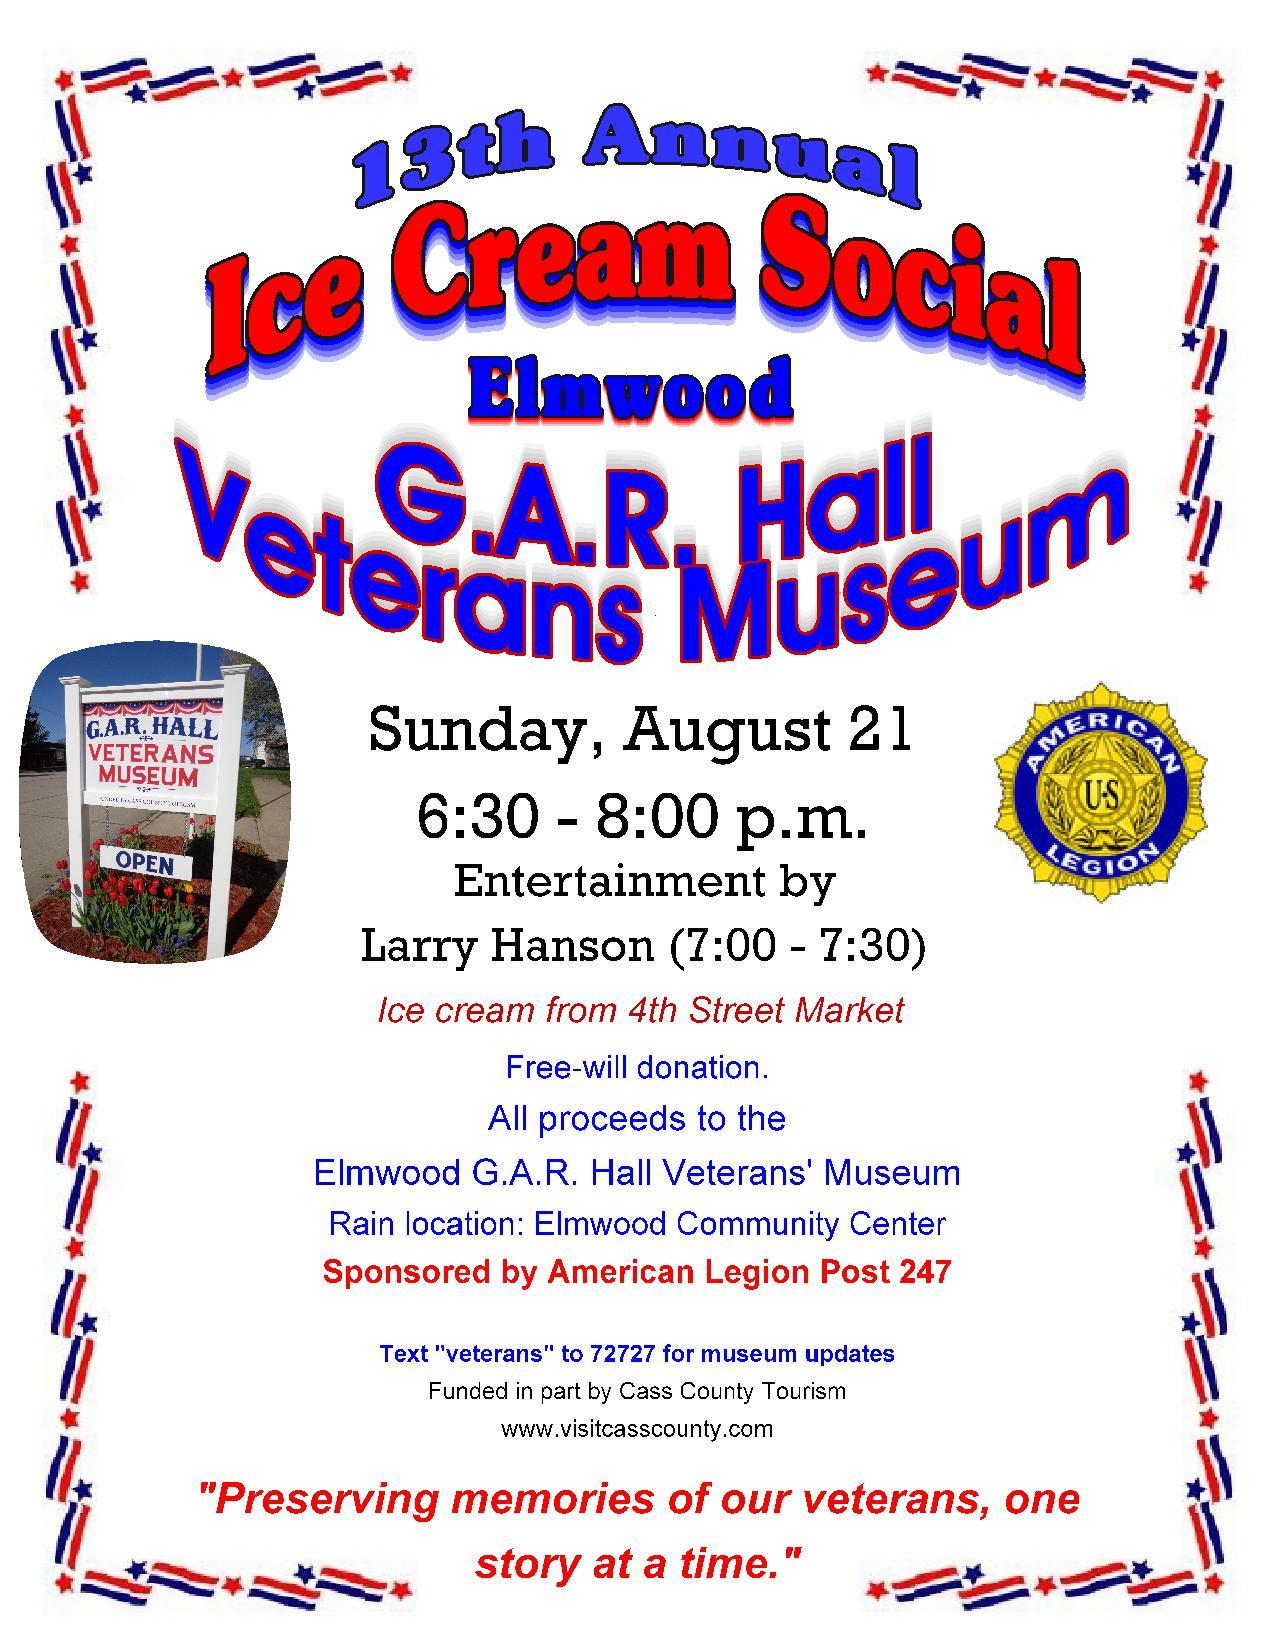 2016 Ice Cream Social page 001